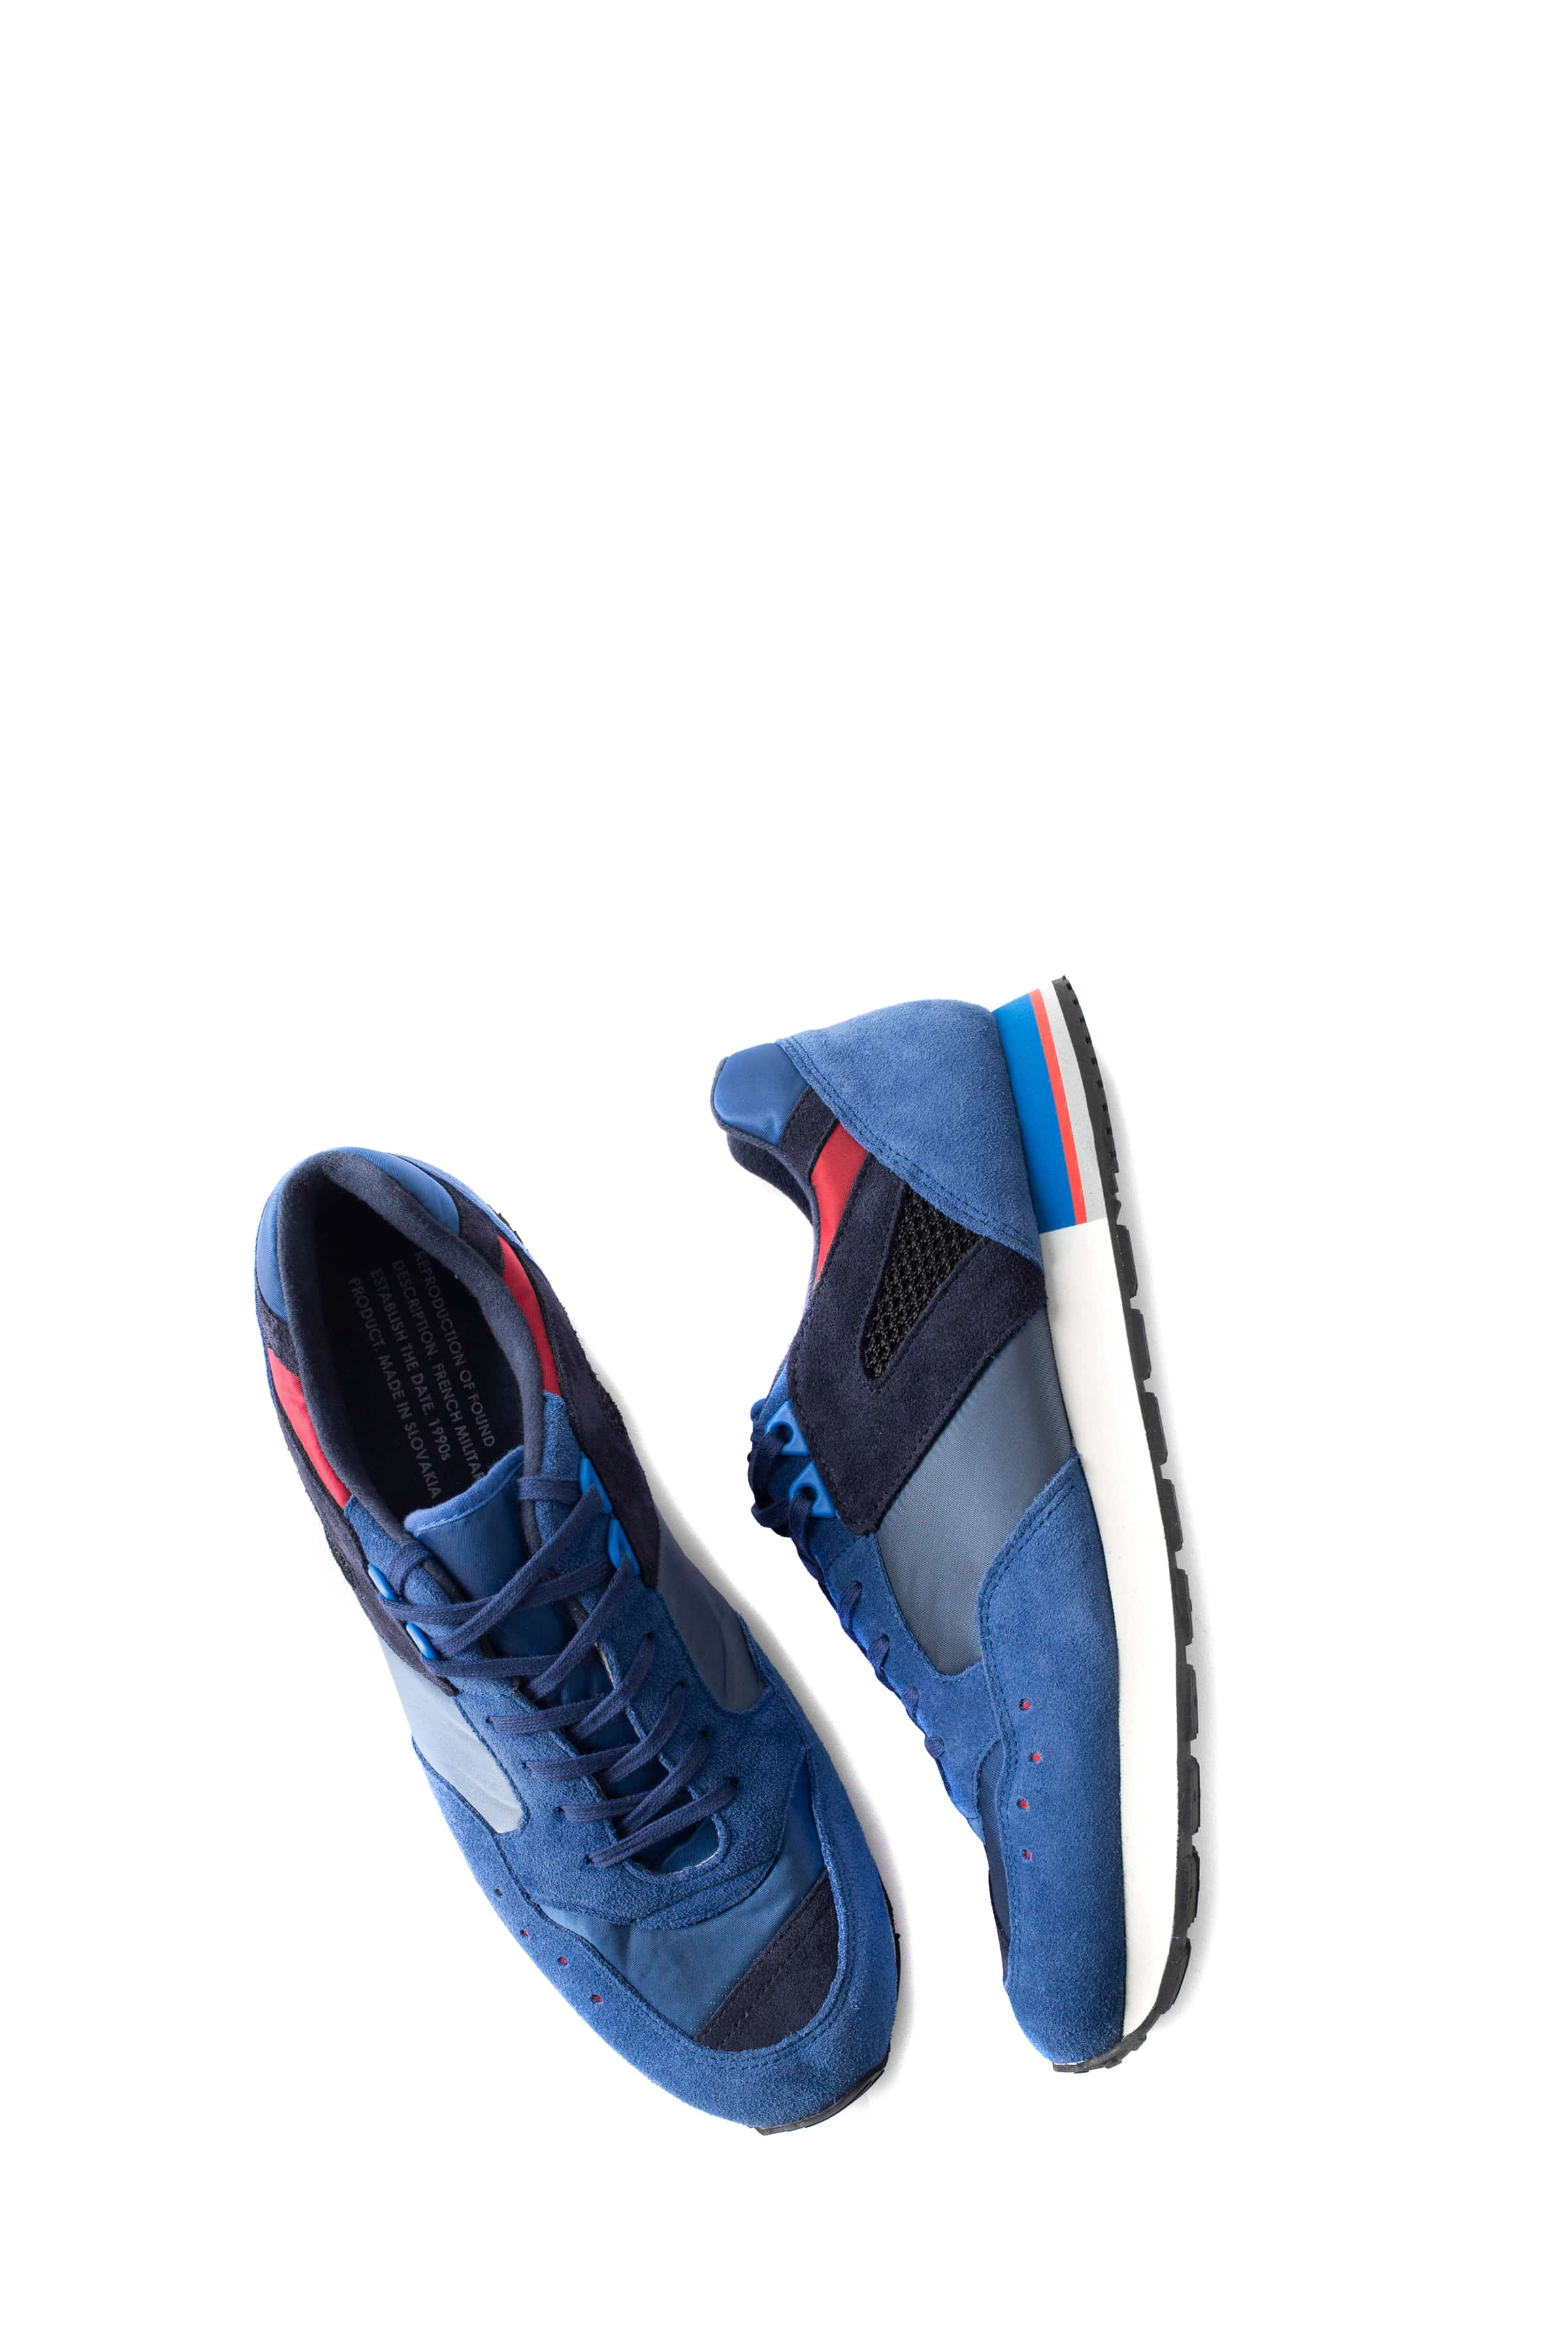 REPRODUCTION OF FOUND : French Military Trainer 1300FS (Blue)